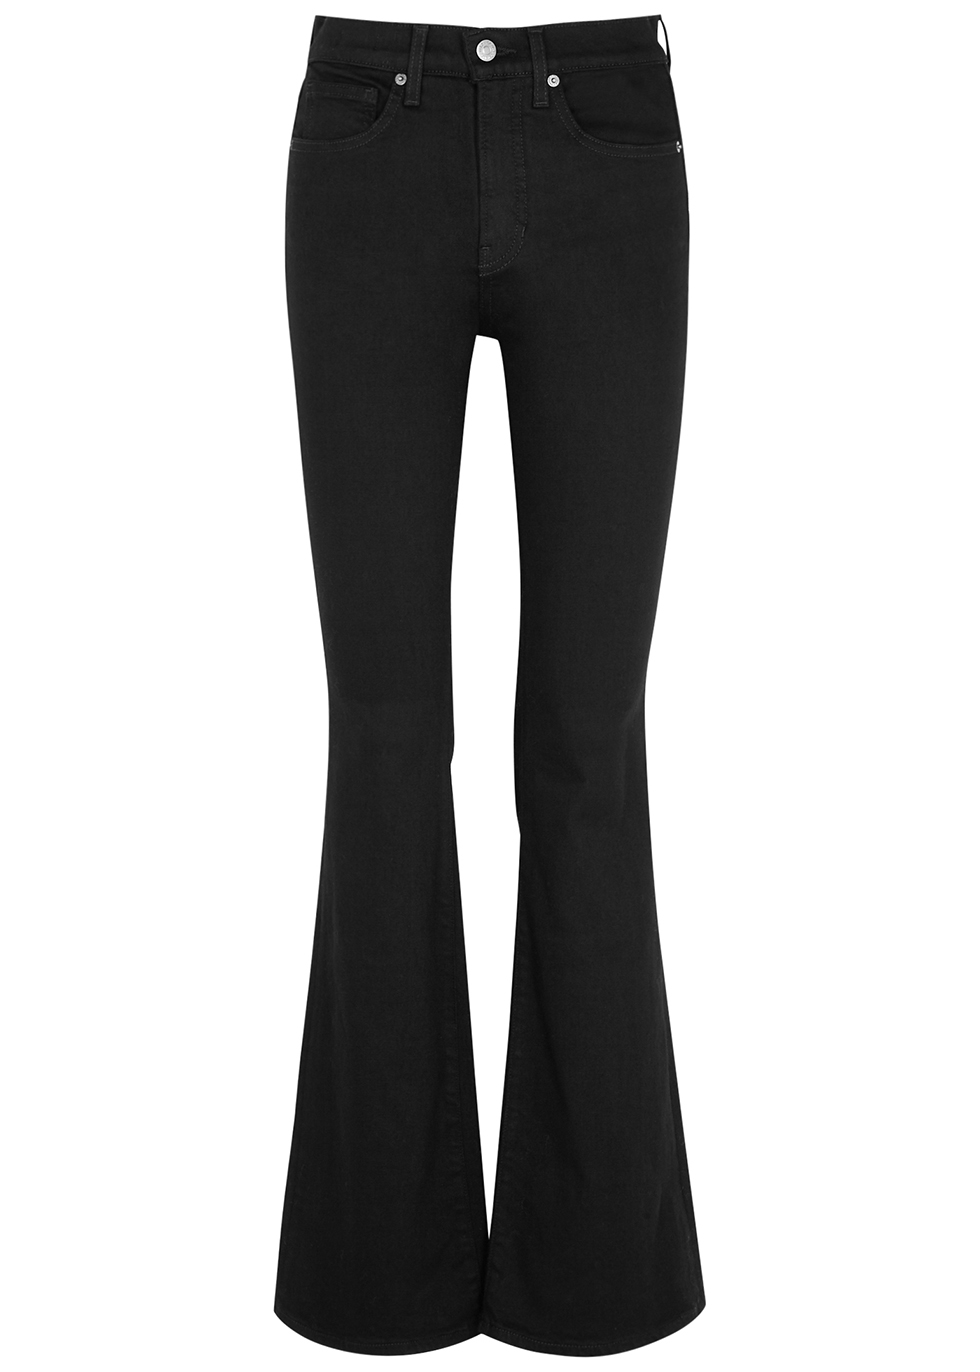 Beverly black flared jeans